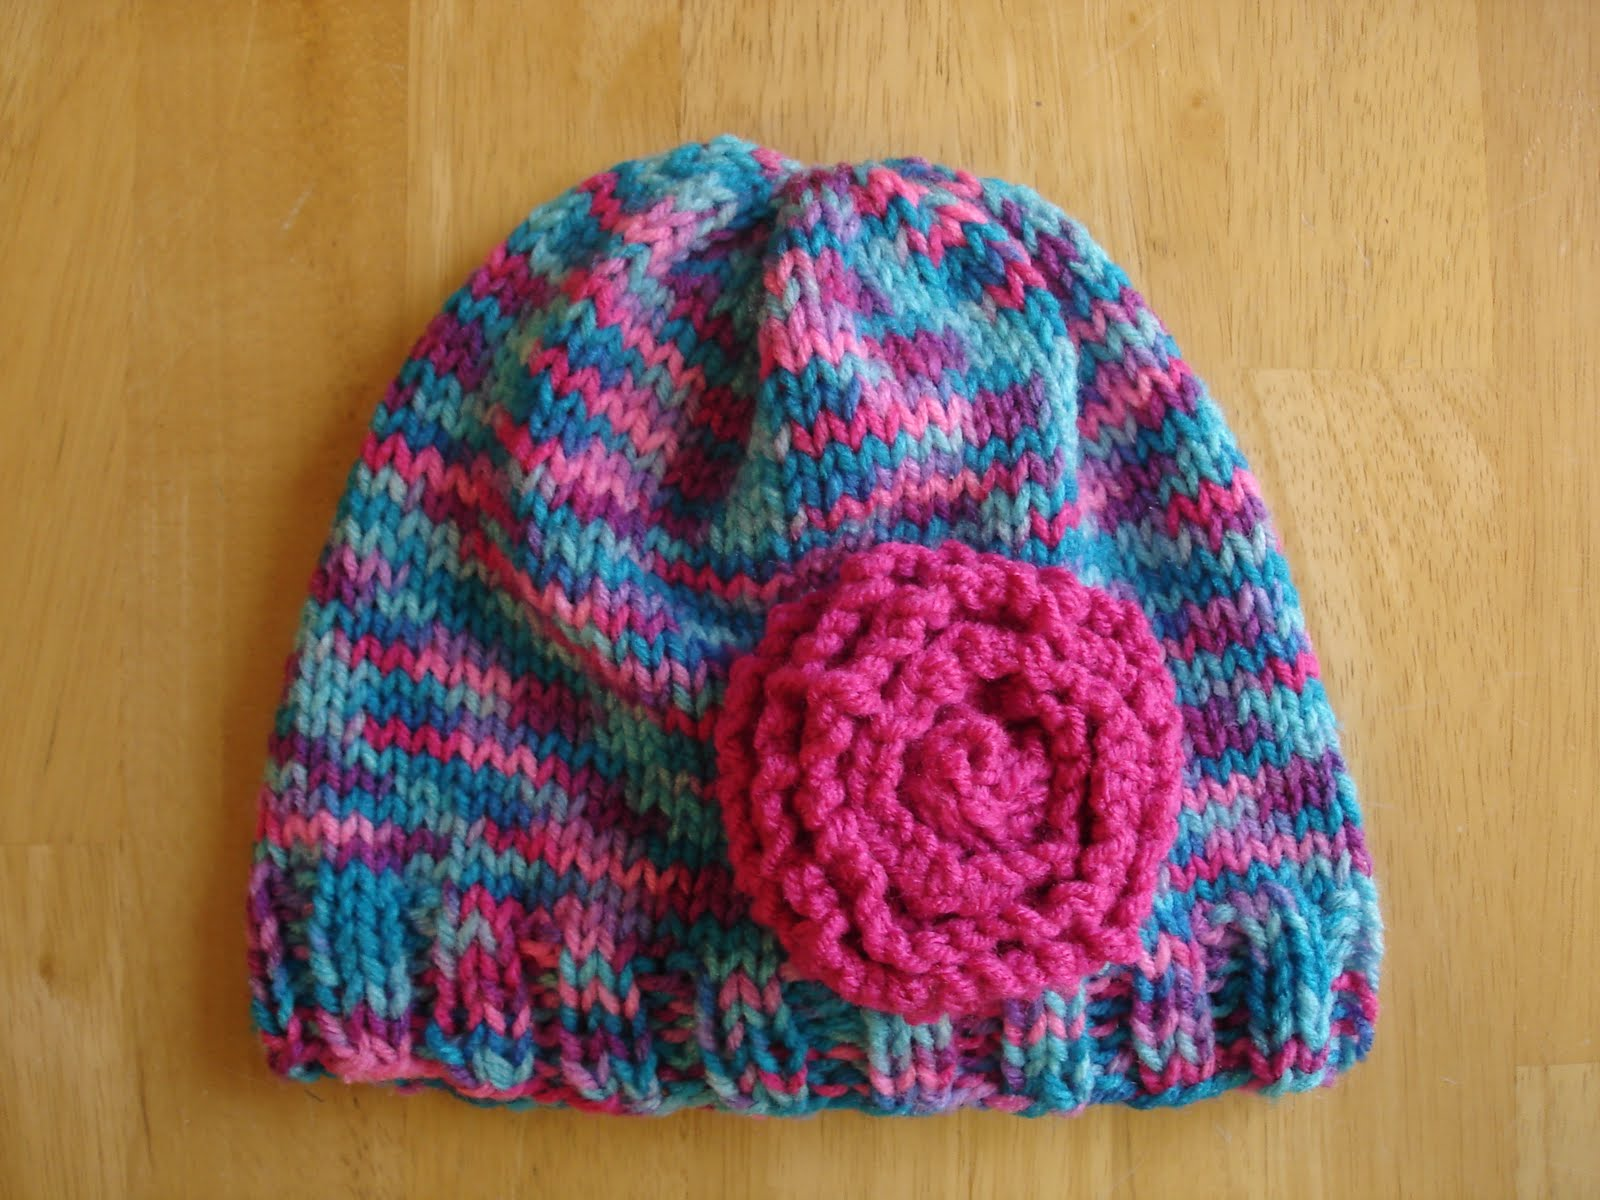 Kids Knit Hat Patterns : Fiber Flux: Free Knitting Pattern...Baby Doll Hats!